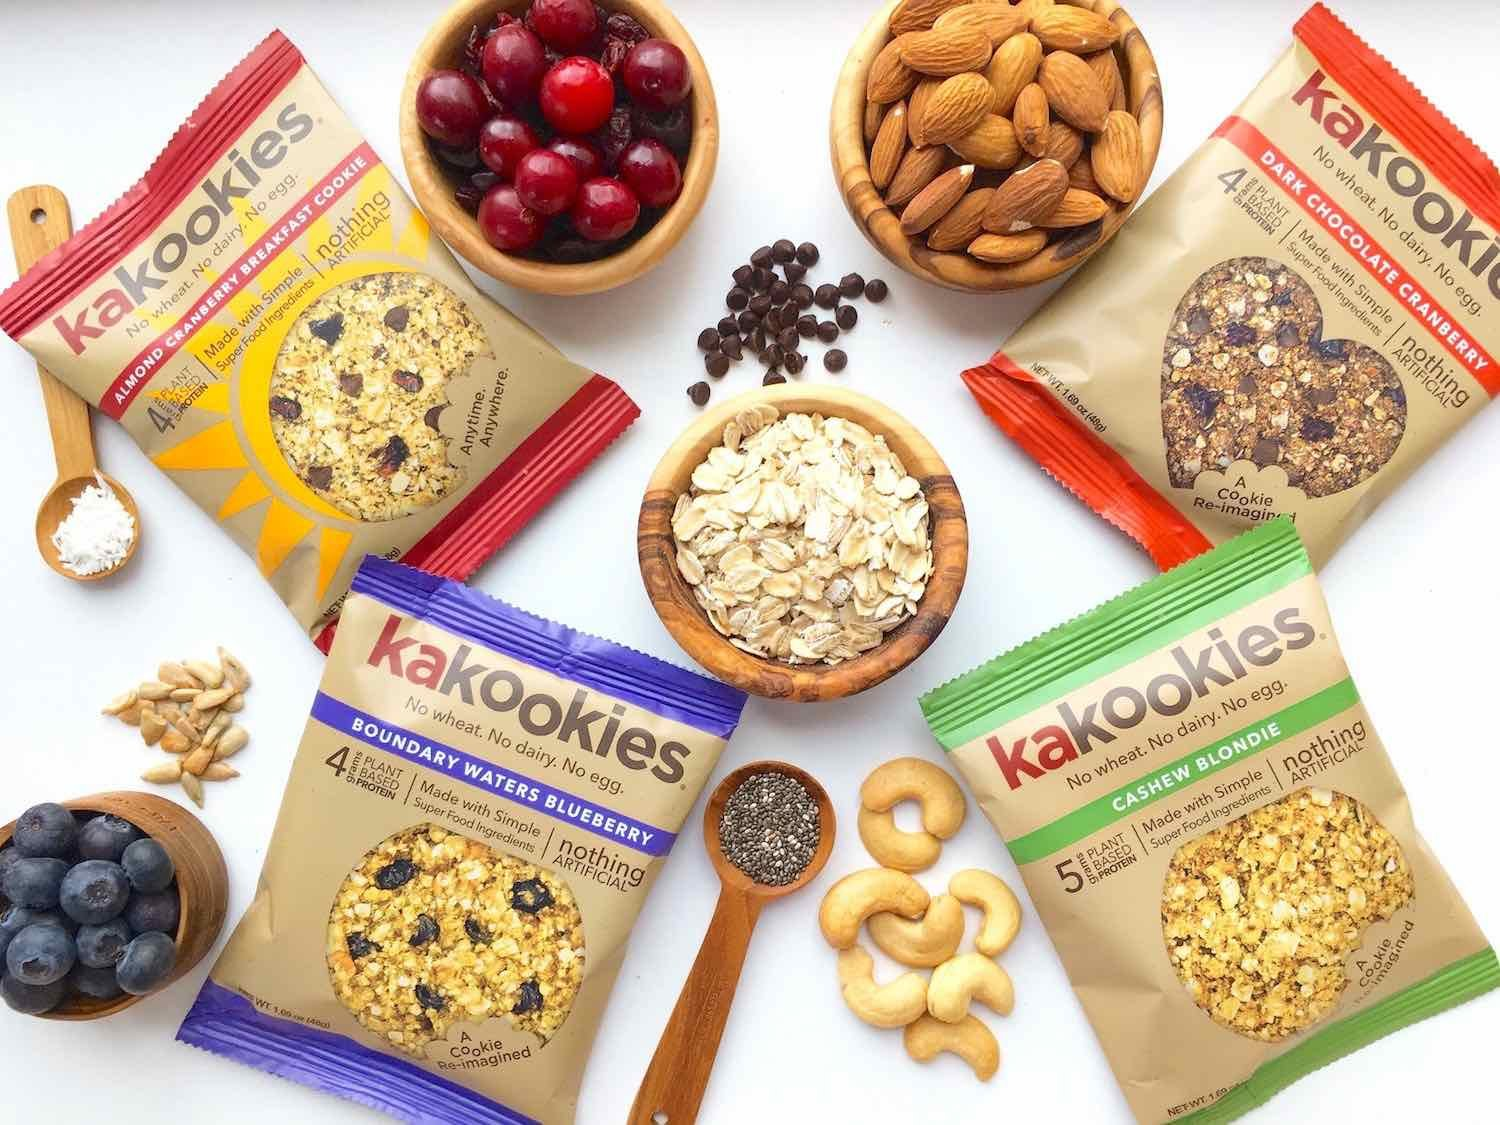 Kakookies Grab and Go Superfood Energy Cookies with Premium Clean Superfood Ingredients